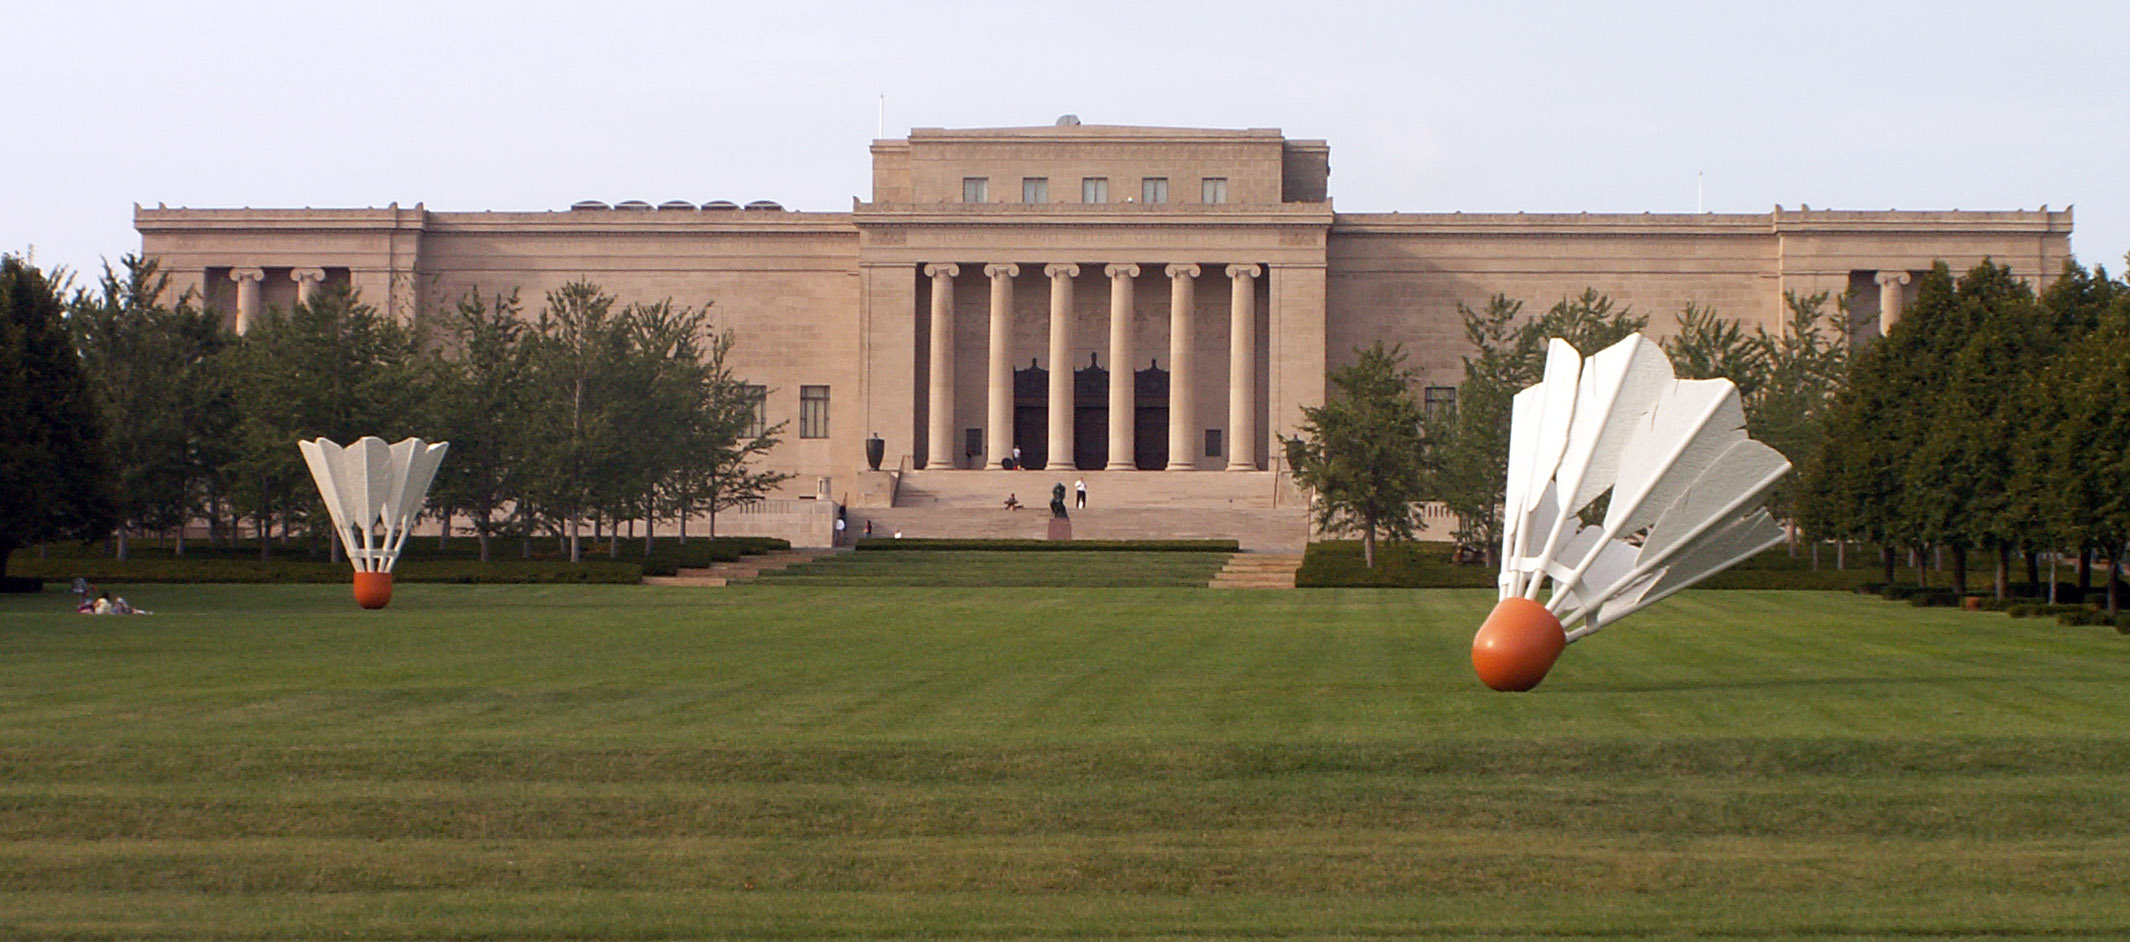 A photograph of the Nelson Art Gallery in Kansas City, Missouri